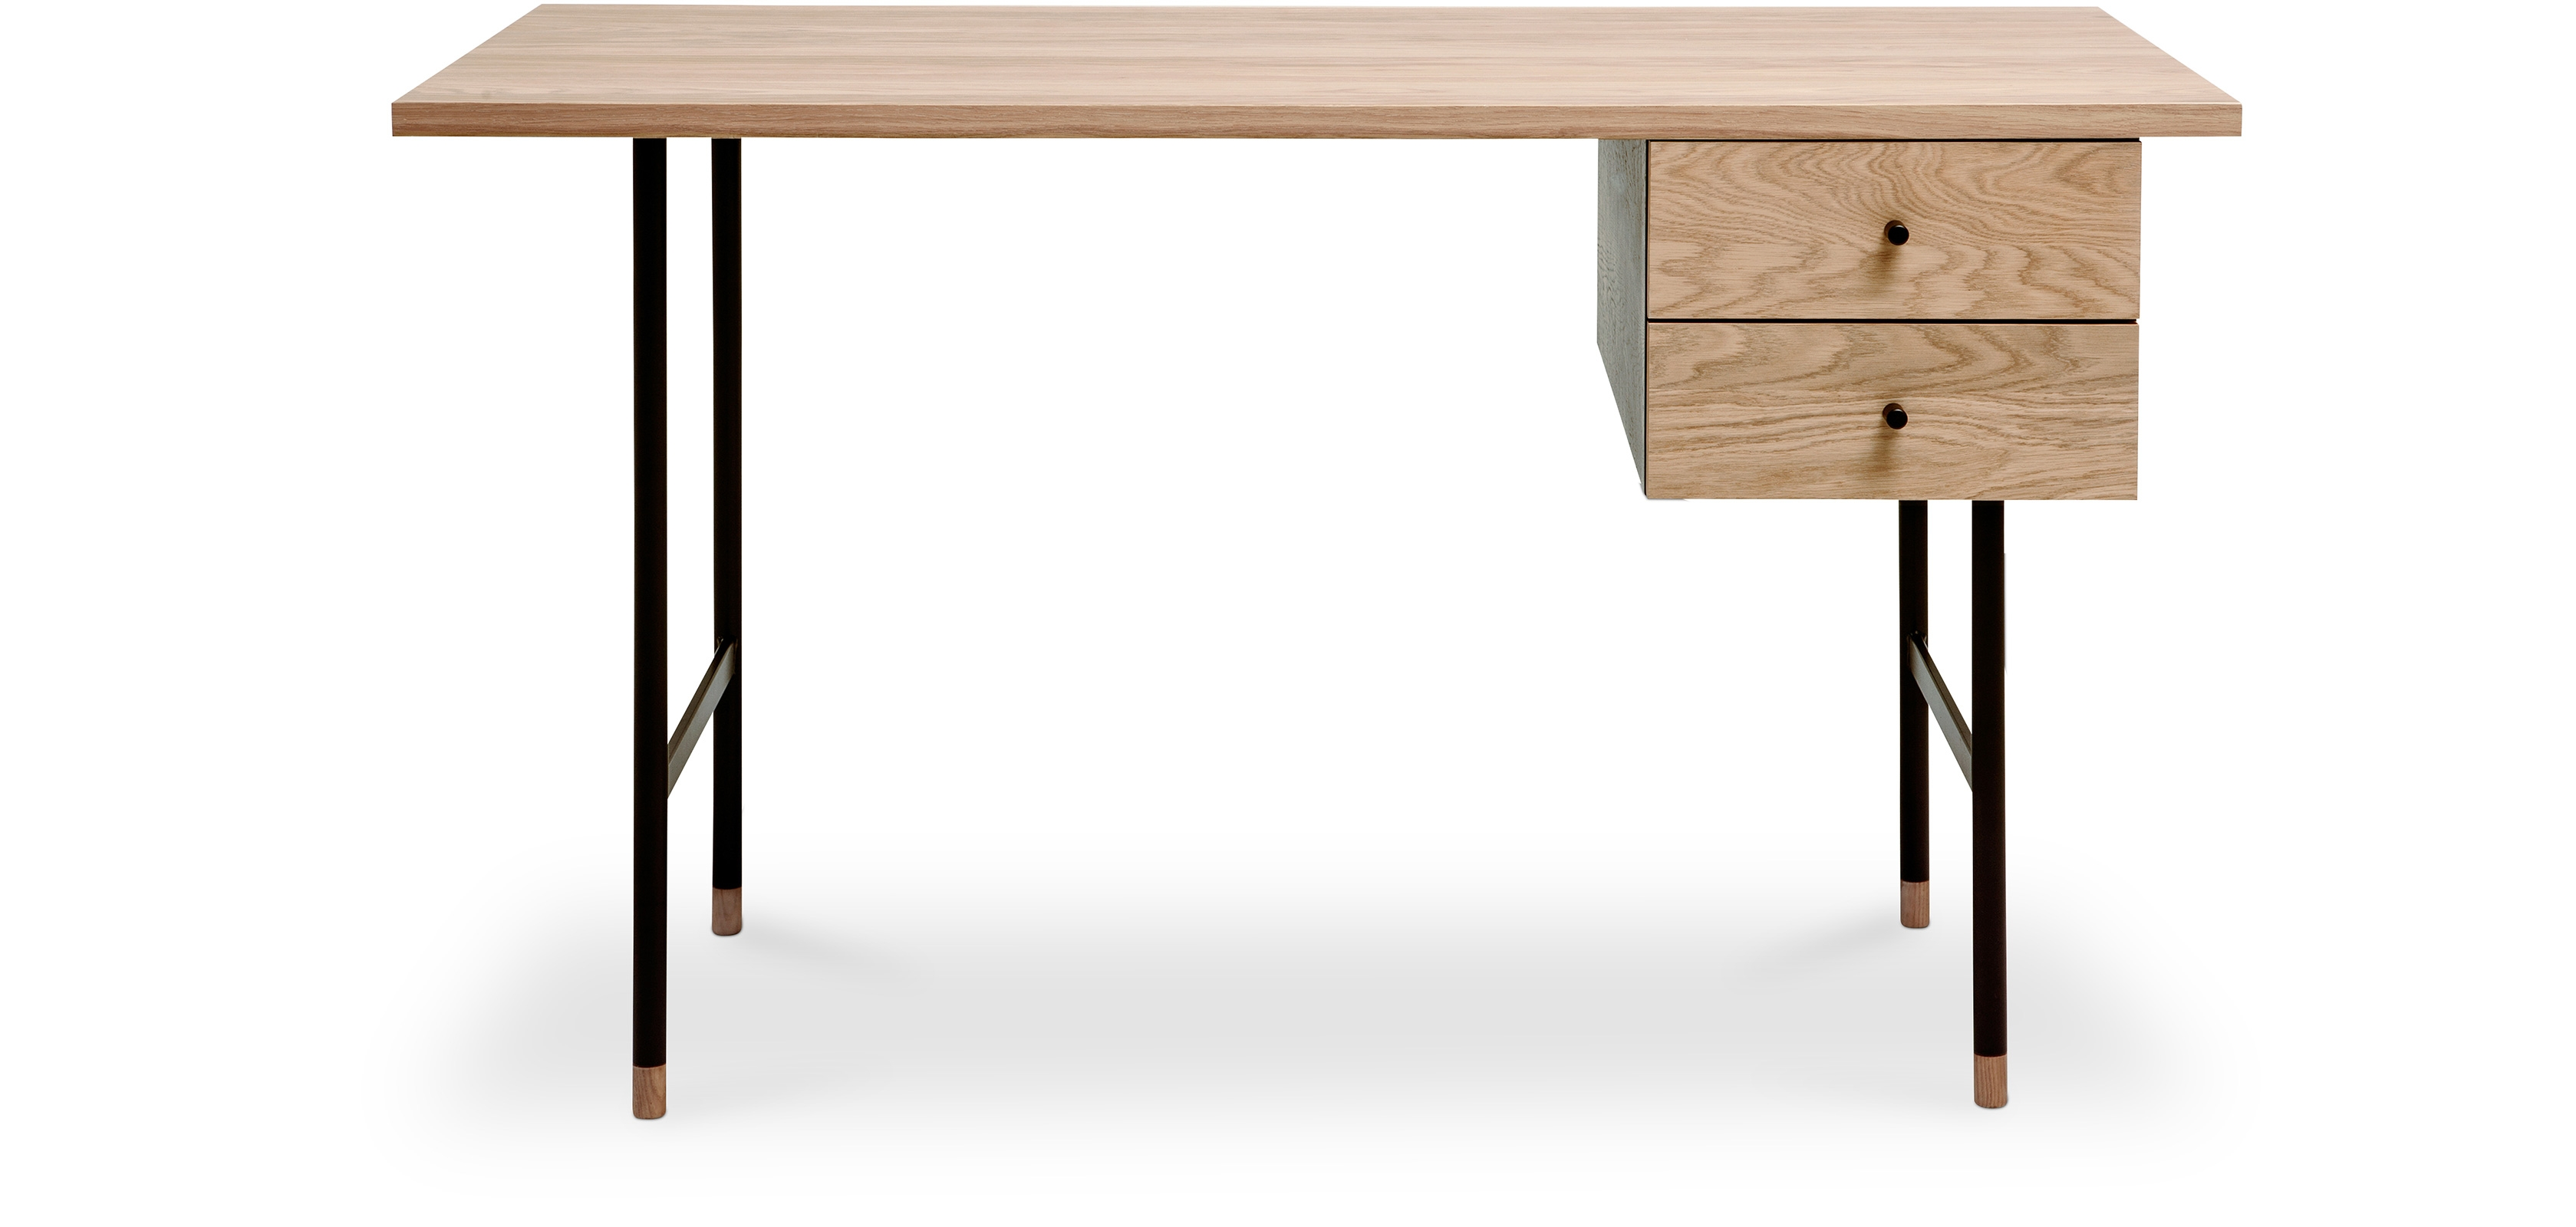 Buy Scandinavian style wood and metal desk with drawers Natural wood 58654 - in the EU